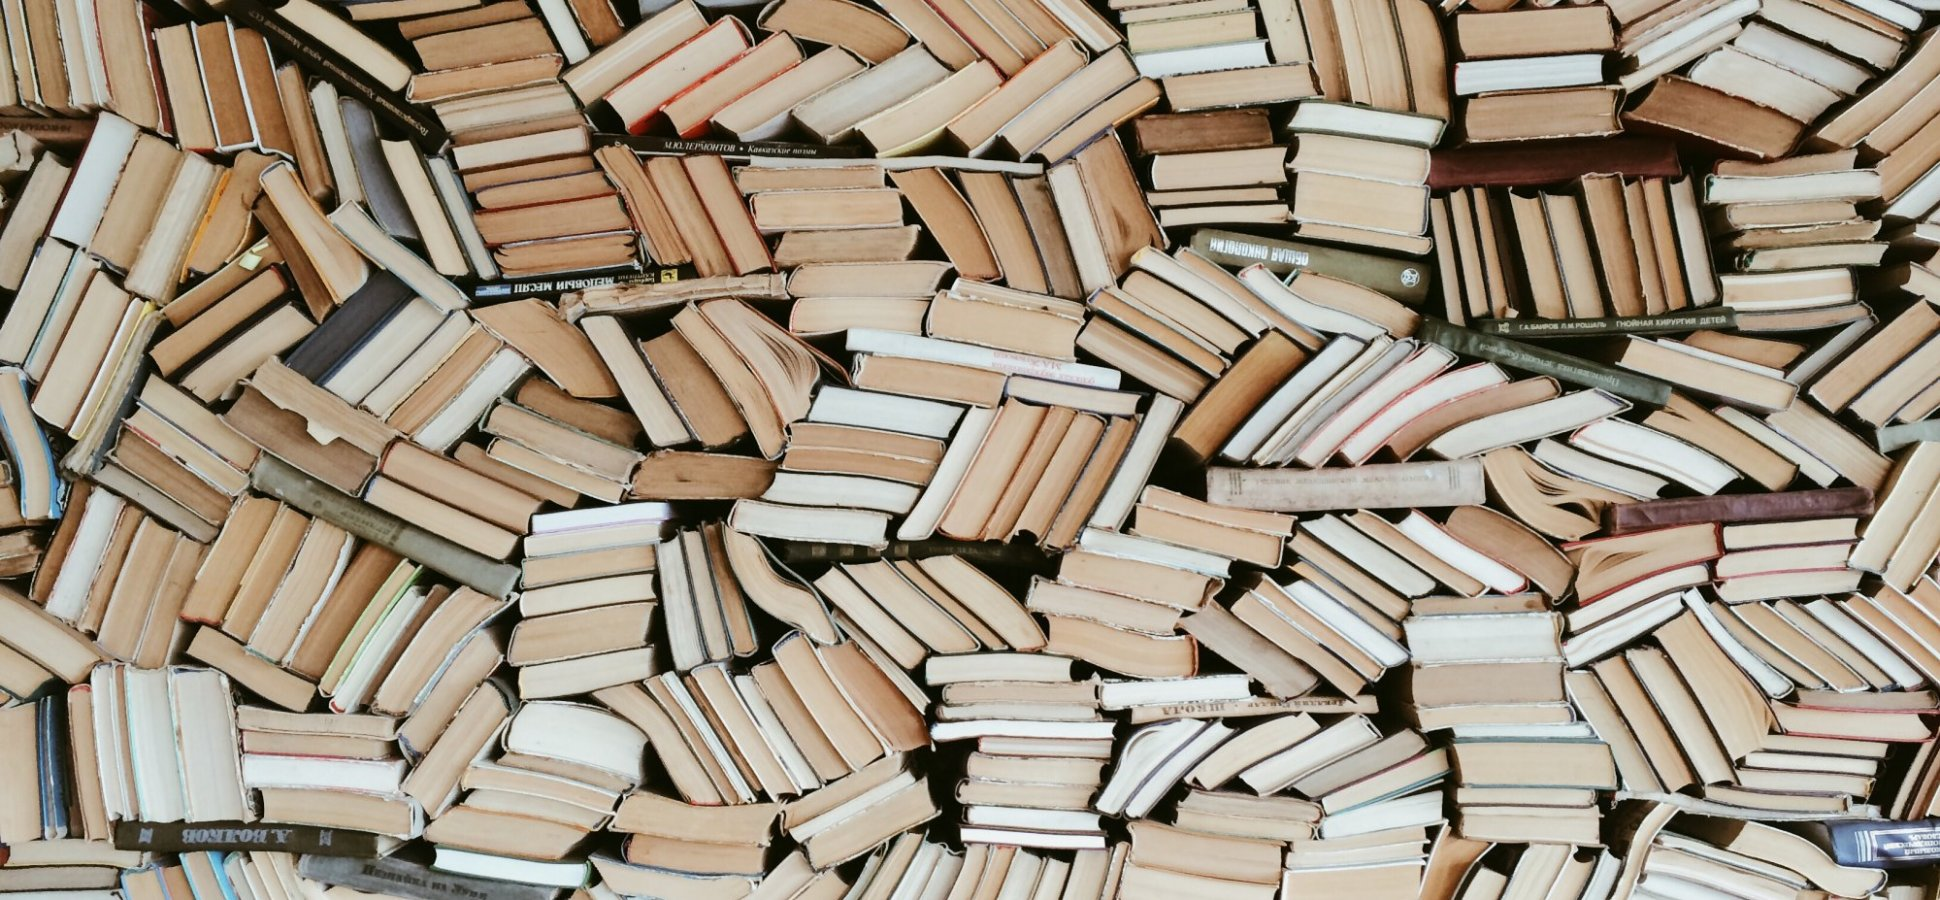 This Unconventional Way of Consuming Books Will Transform How You Read